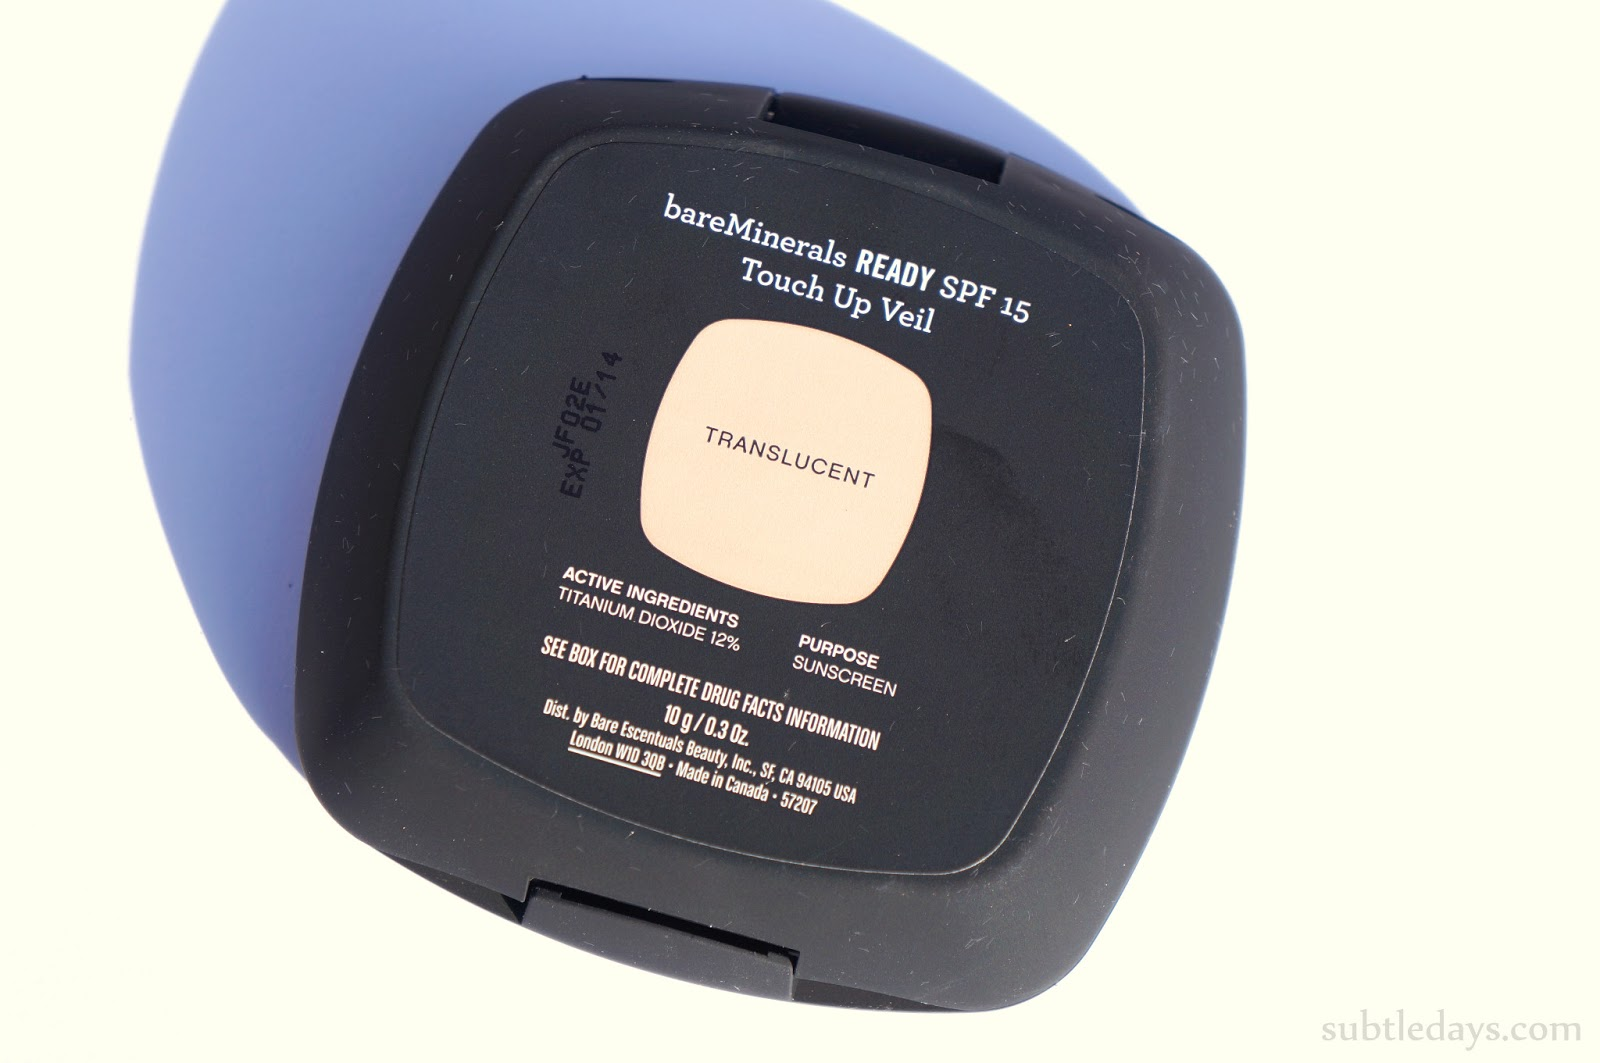 Ready Touch Up Veil by bareMinerals #21